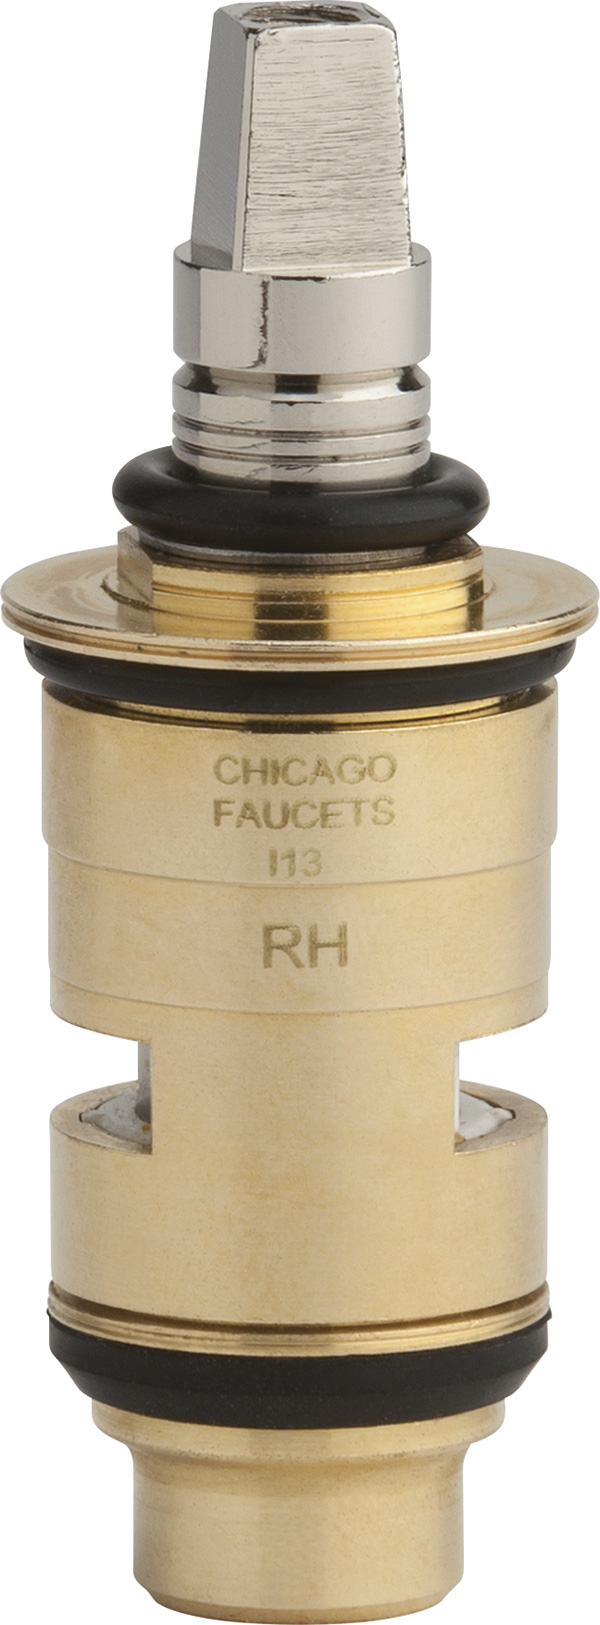 Ceramic 1 4 Turn Operating Cartridge With Integrated Check Valve Right Hand